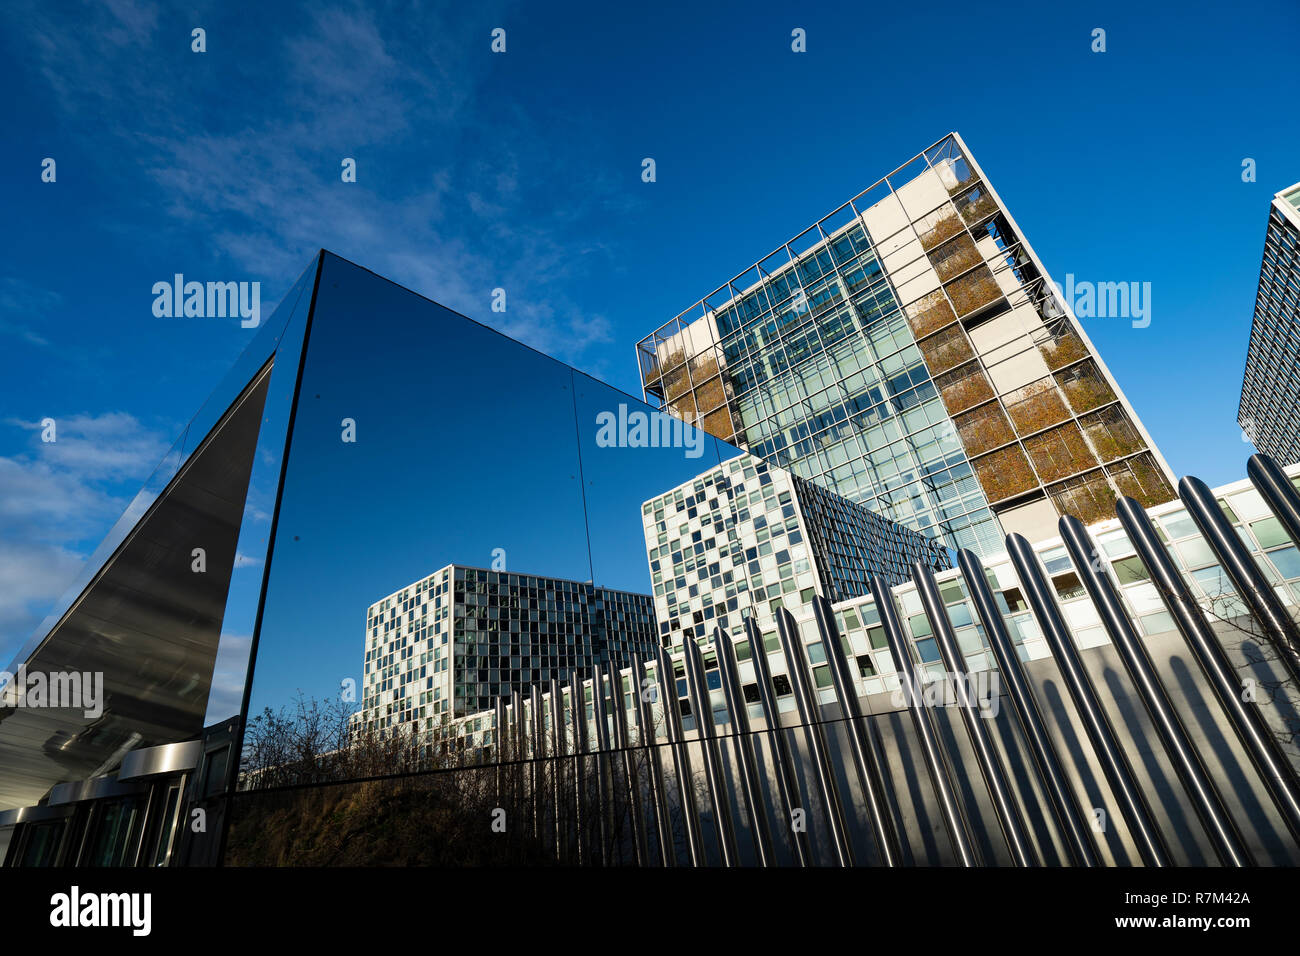 The new headquarters of the International Criminal Court , ICC, in The Hague, The Netherlands - Stock Image